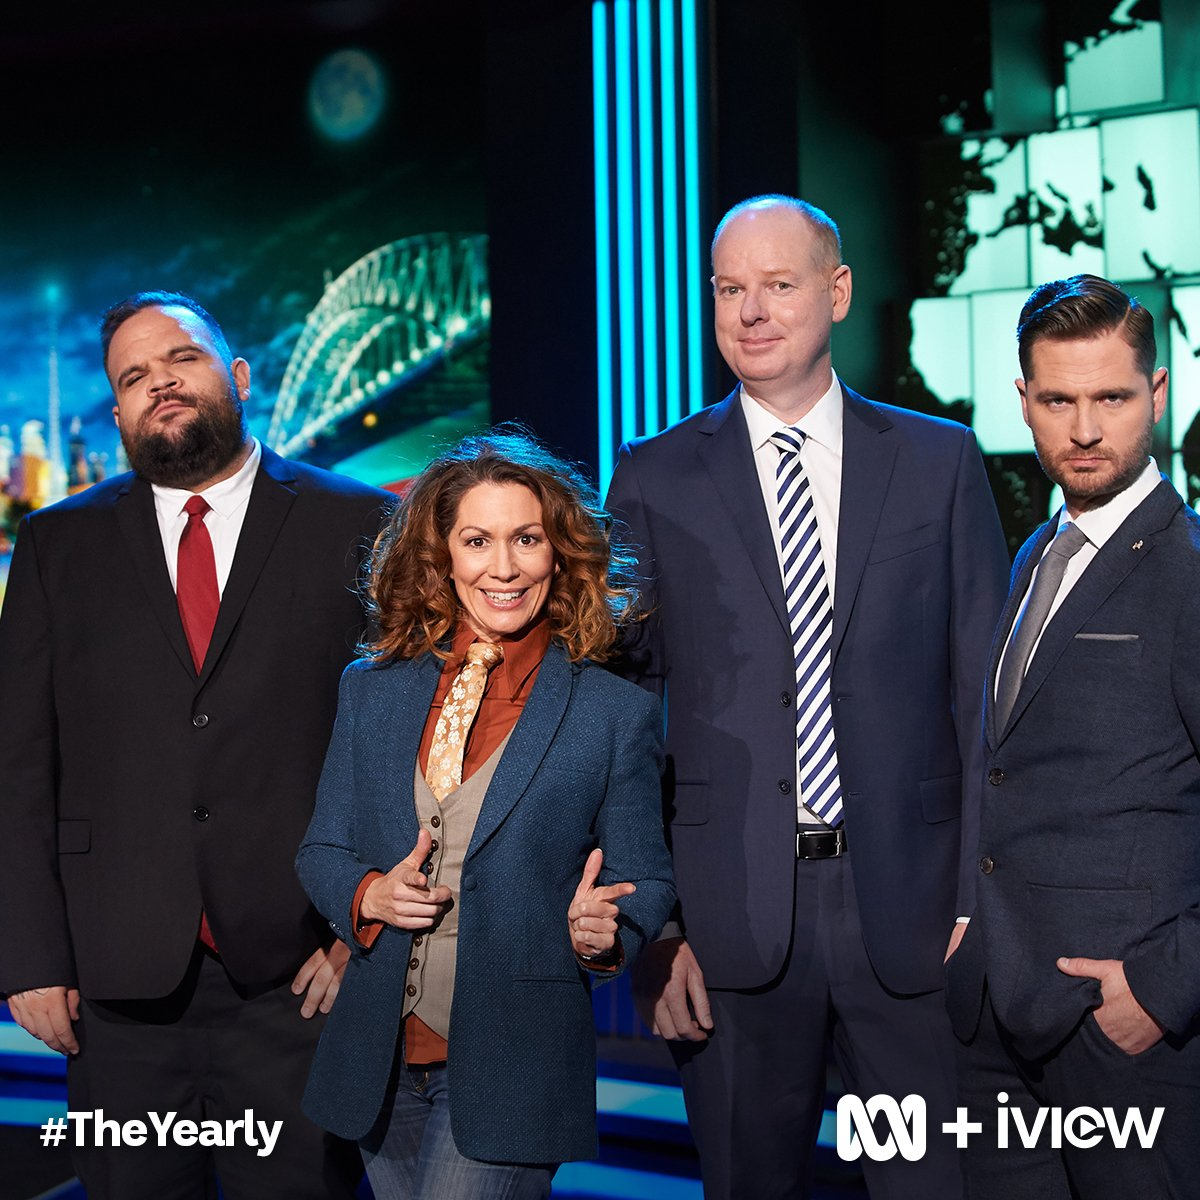 What happened 2018? No seriously, what was that?! @theweeklytv team wraps up the year that was tonight at 8pm on #TheYearly.